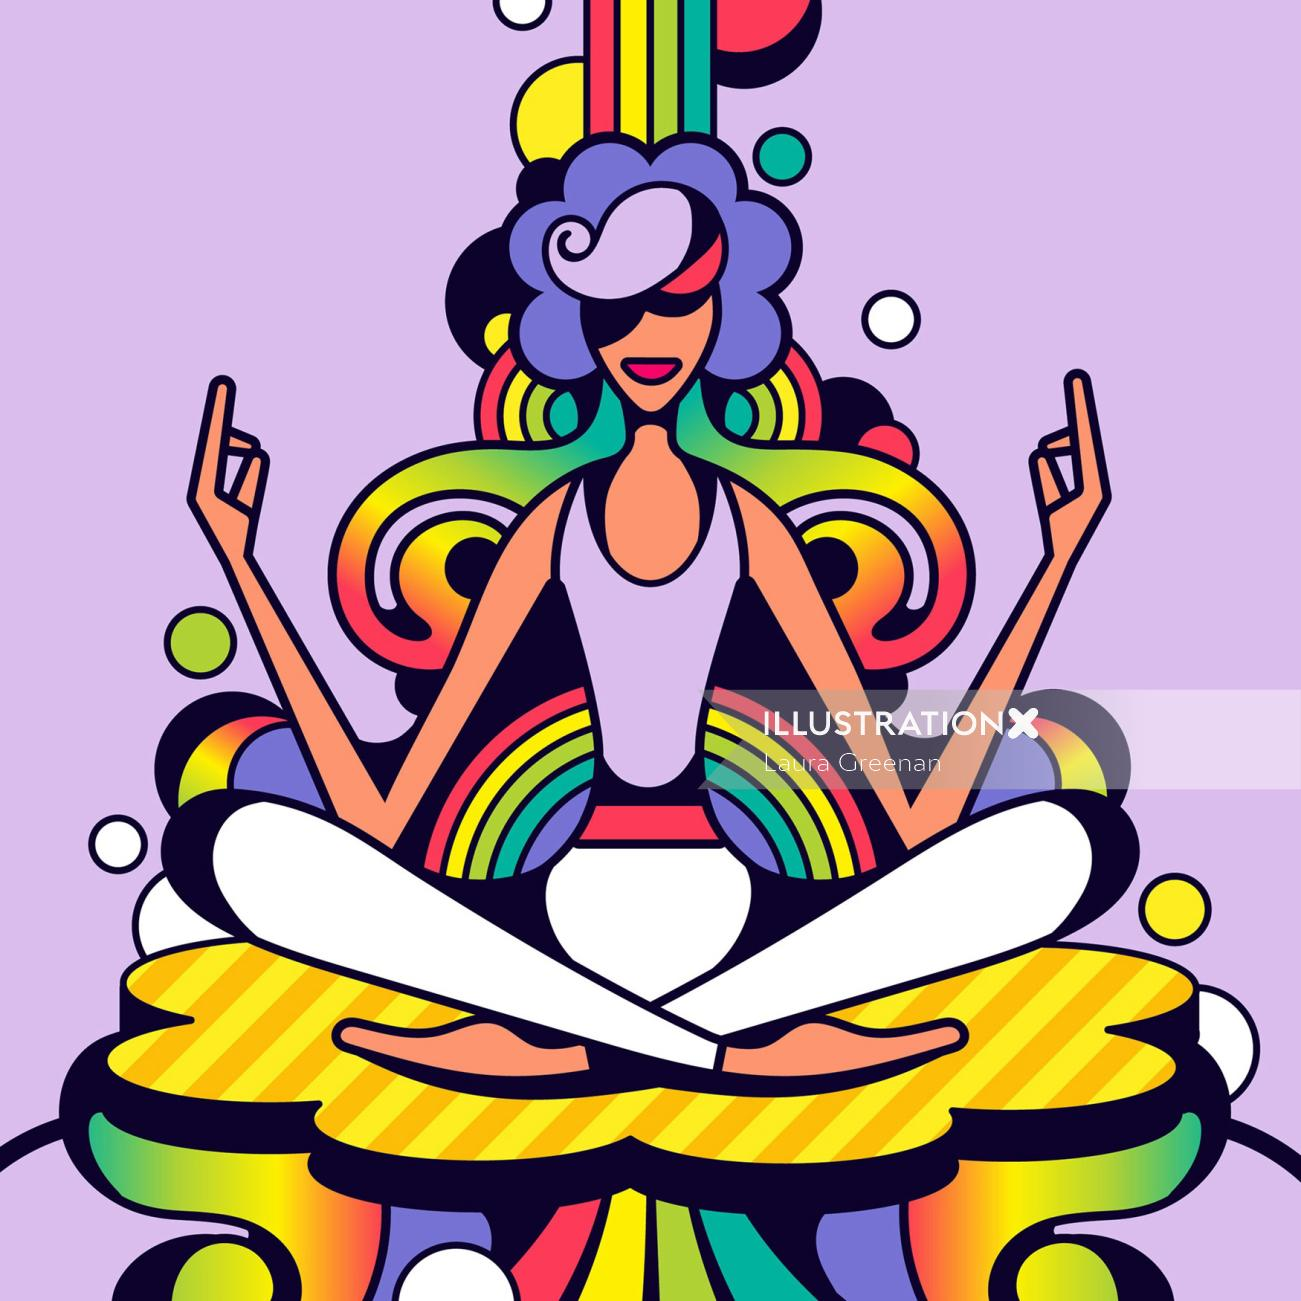 A 60s pop art style illustration of a woman practising yoga.